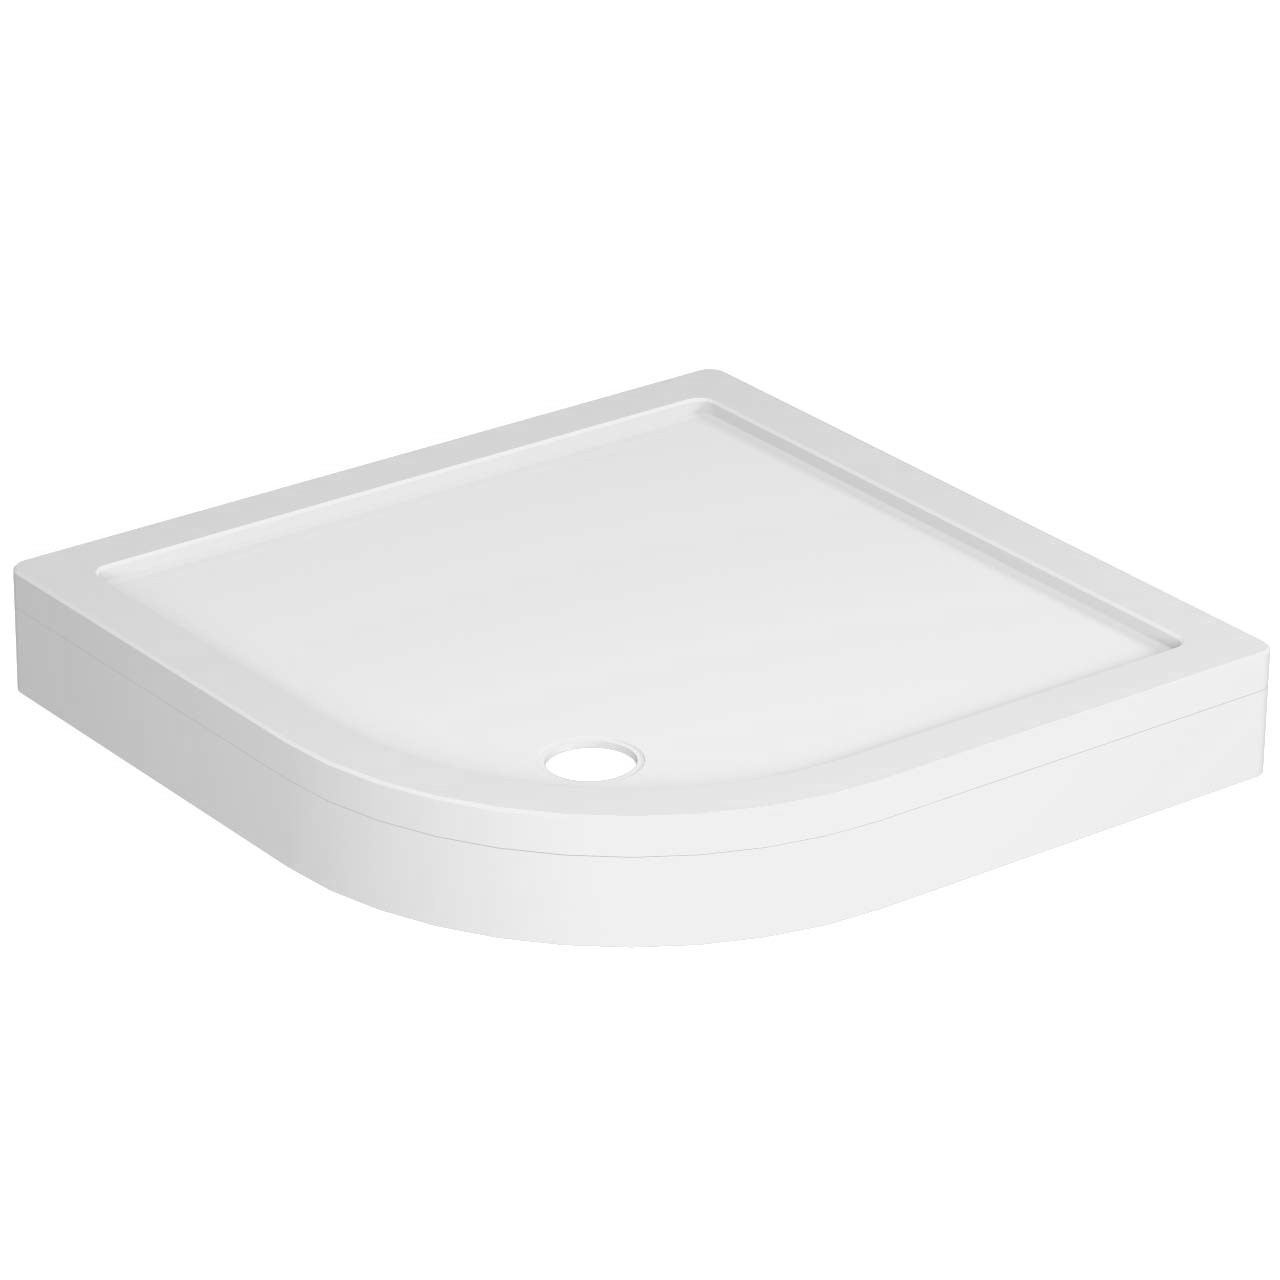 40mm Pearlstone 900 x 900 Quadrant Shower Tray & Plinth